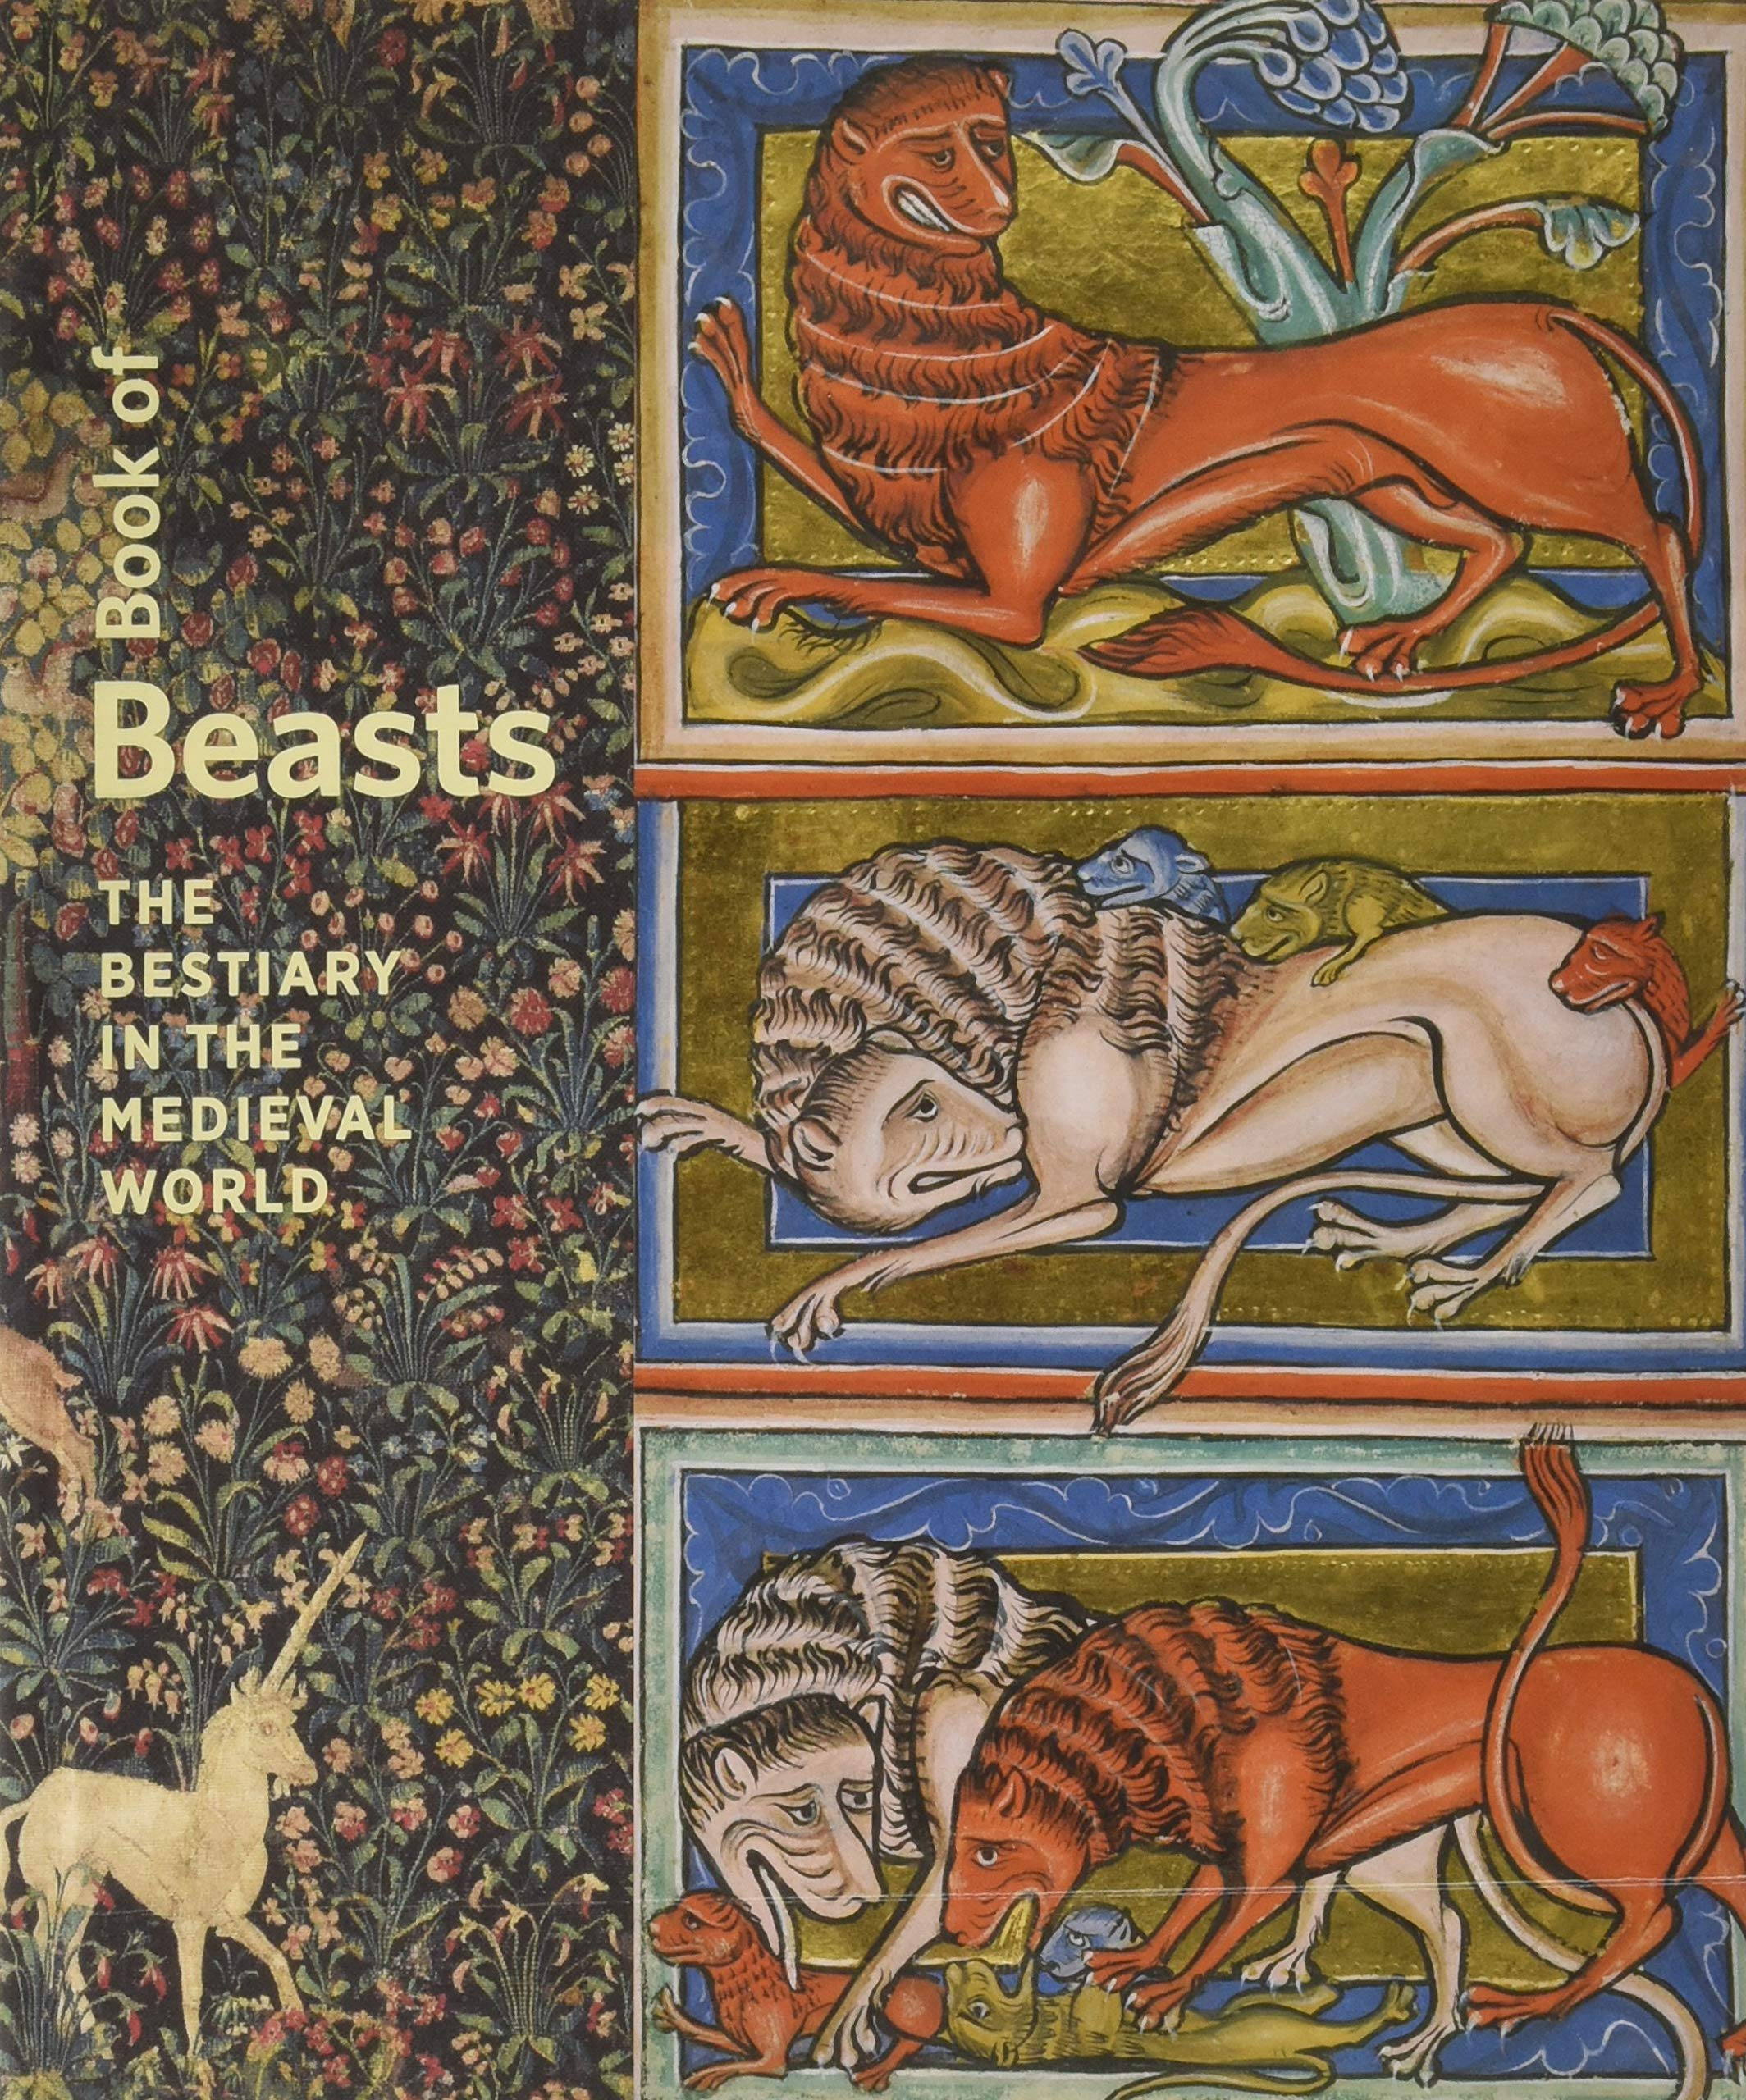 Book of Beasts: The Bestiary in the Medieval World by J. Paul Getty Museum